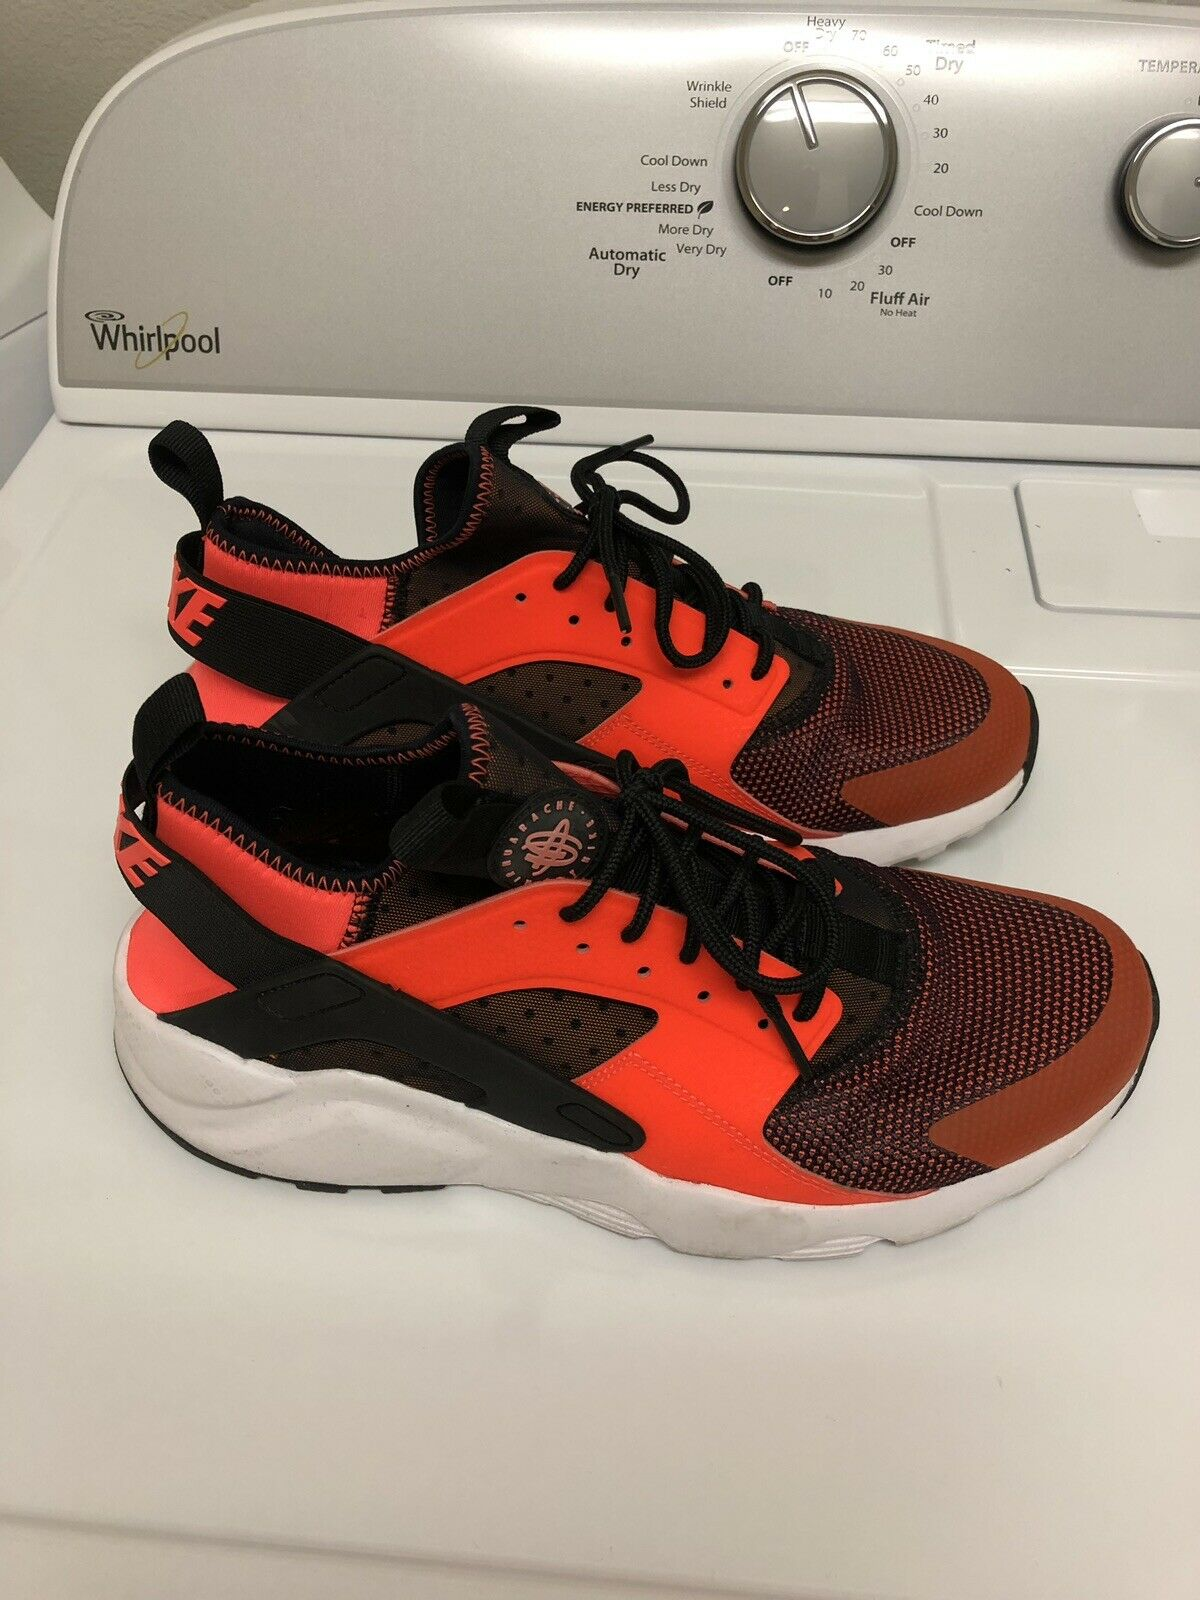 Nike Air Huarache Run Ultra Crimson orange shoes Sneakers Sz 10 819685-008